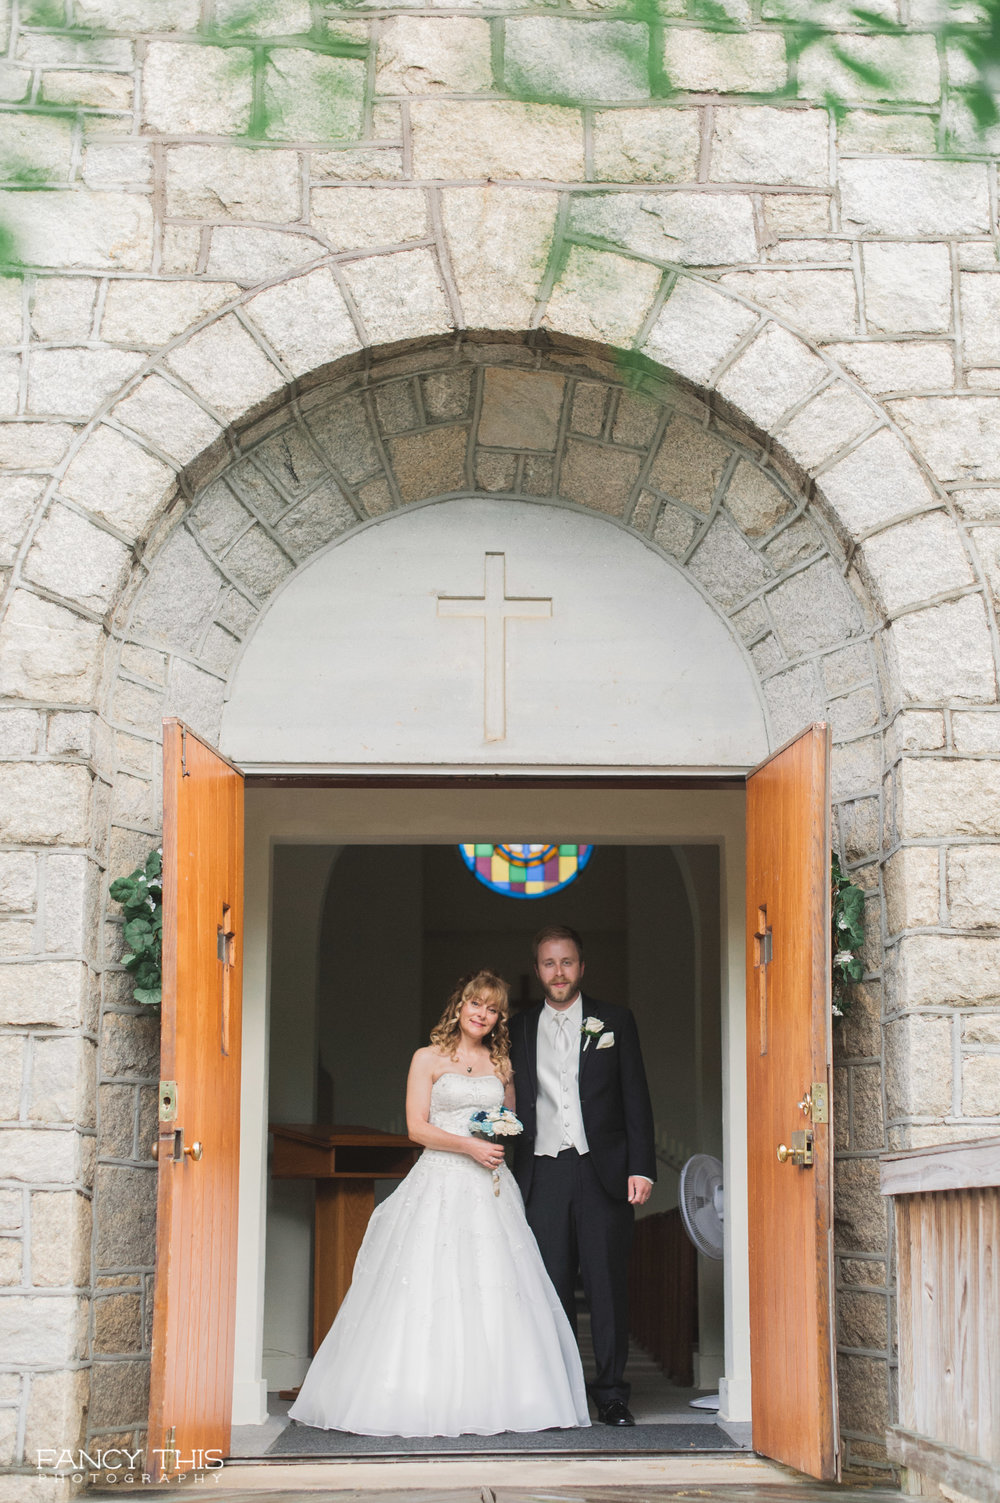 courtneyjasonwedding_socialmediaready157.jpg